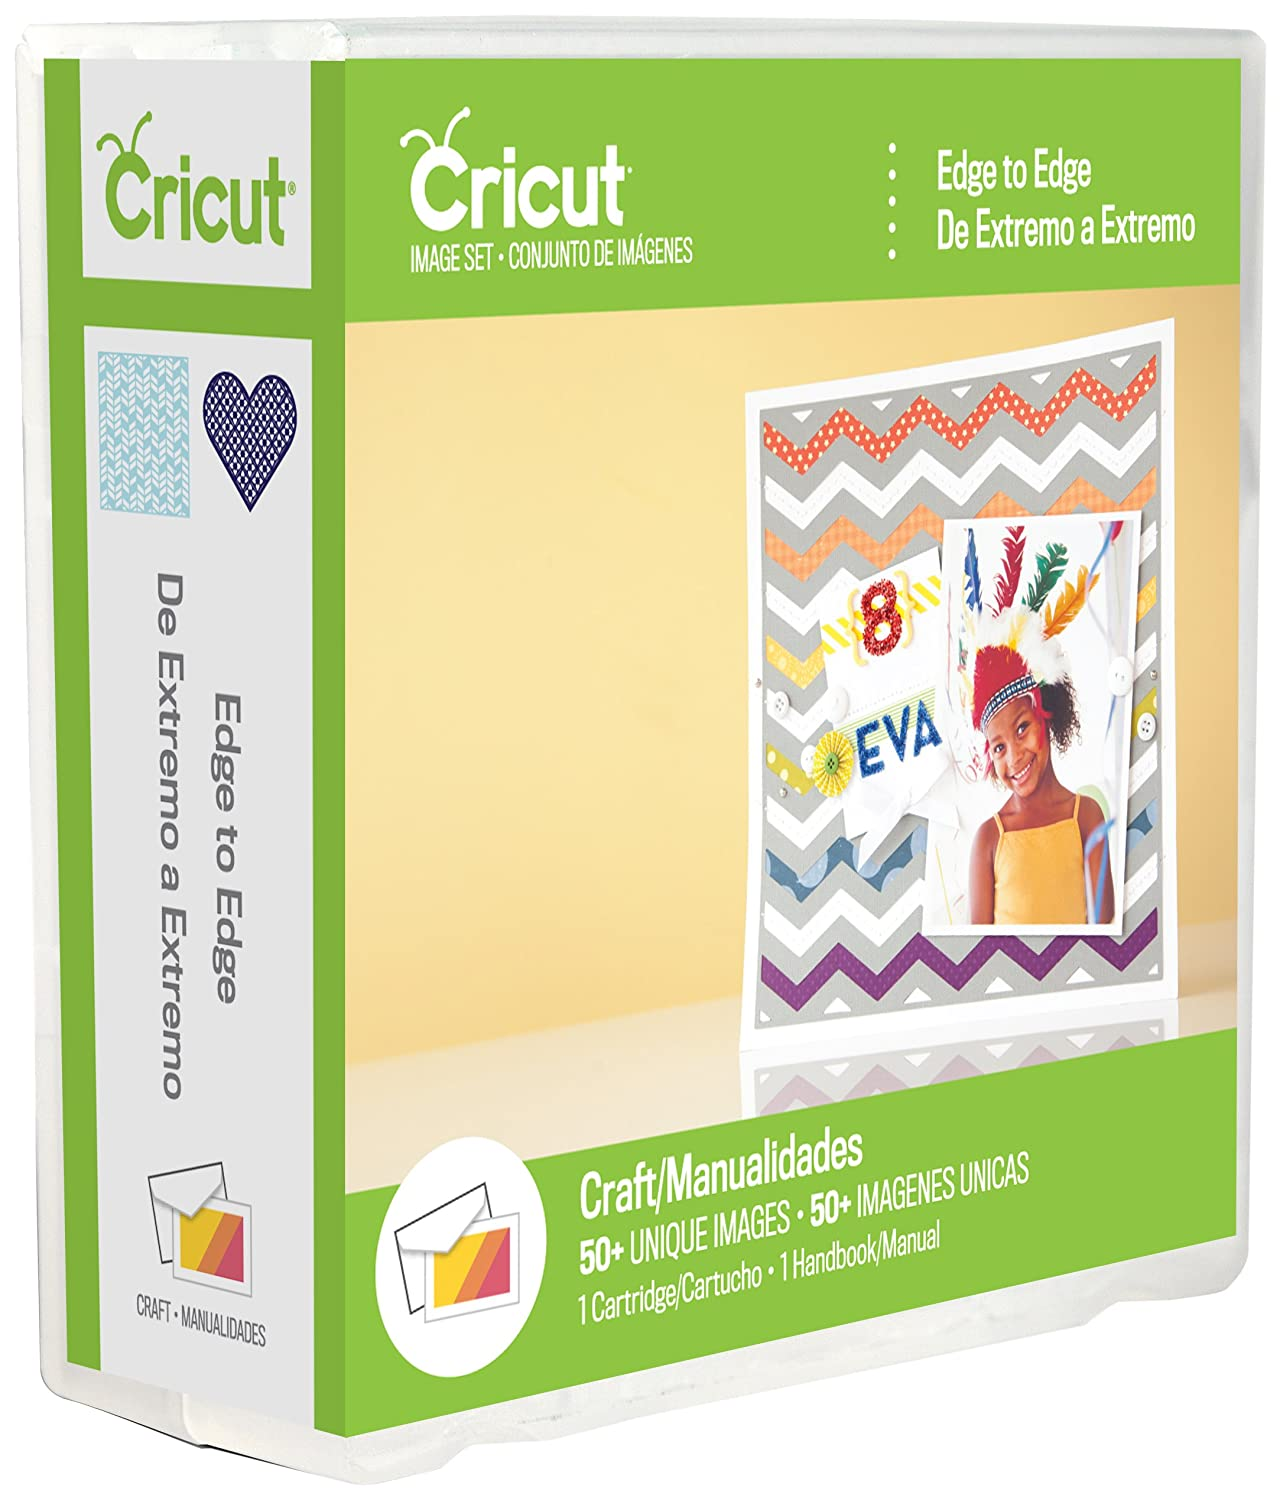 Cricut 2002147 Edge to Edge Cartridge for Artwork